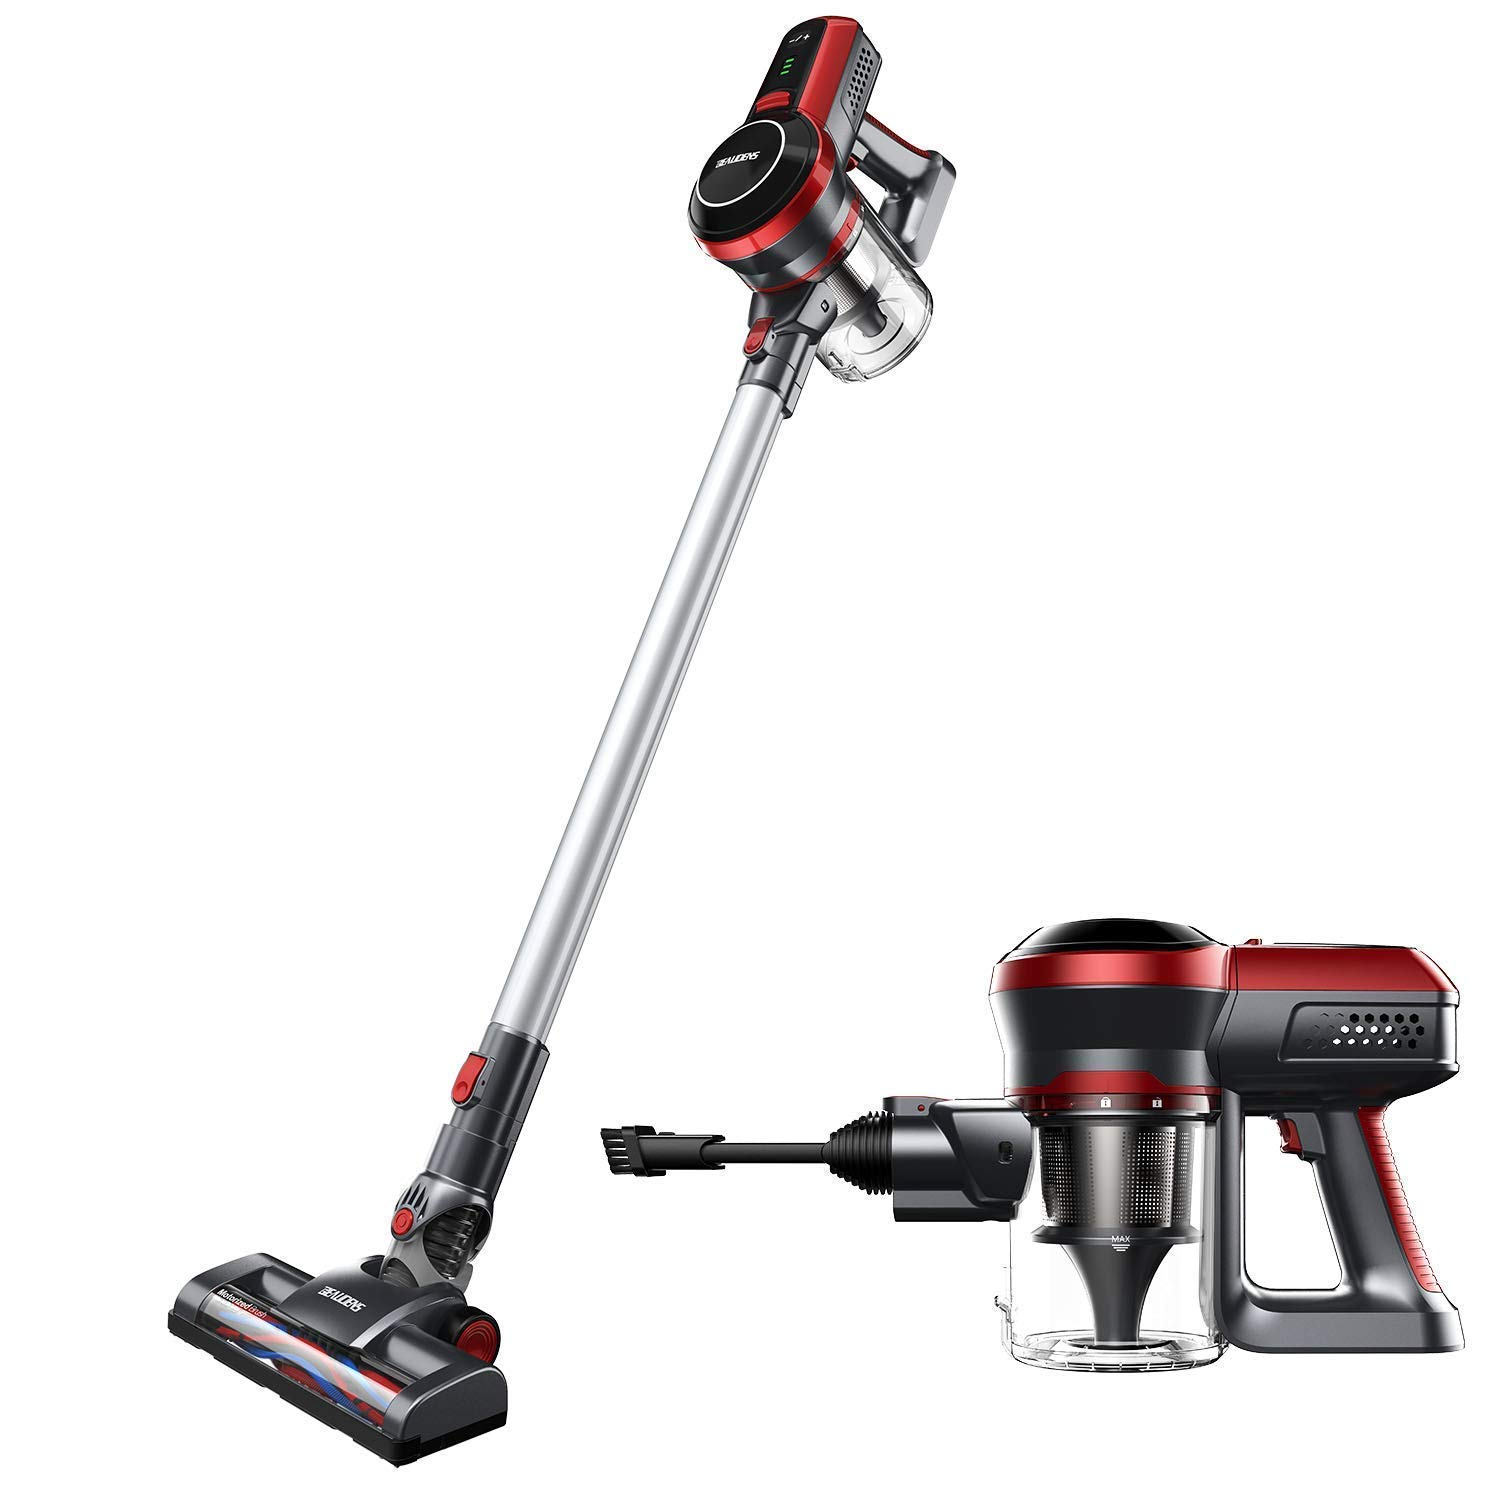 Cordless Vacuum Cleaner, Powerful 130W Motor, Lightweight and Quiet, 45 Minutes Long Runtime, 2 in 1 Stick and Handheld, Wall Mounted